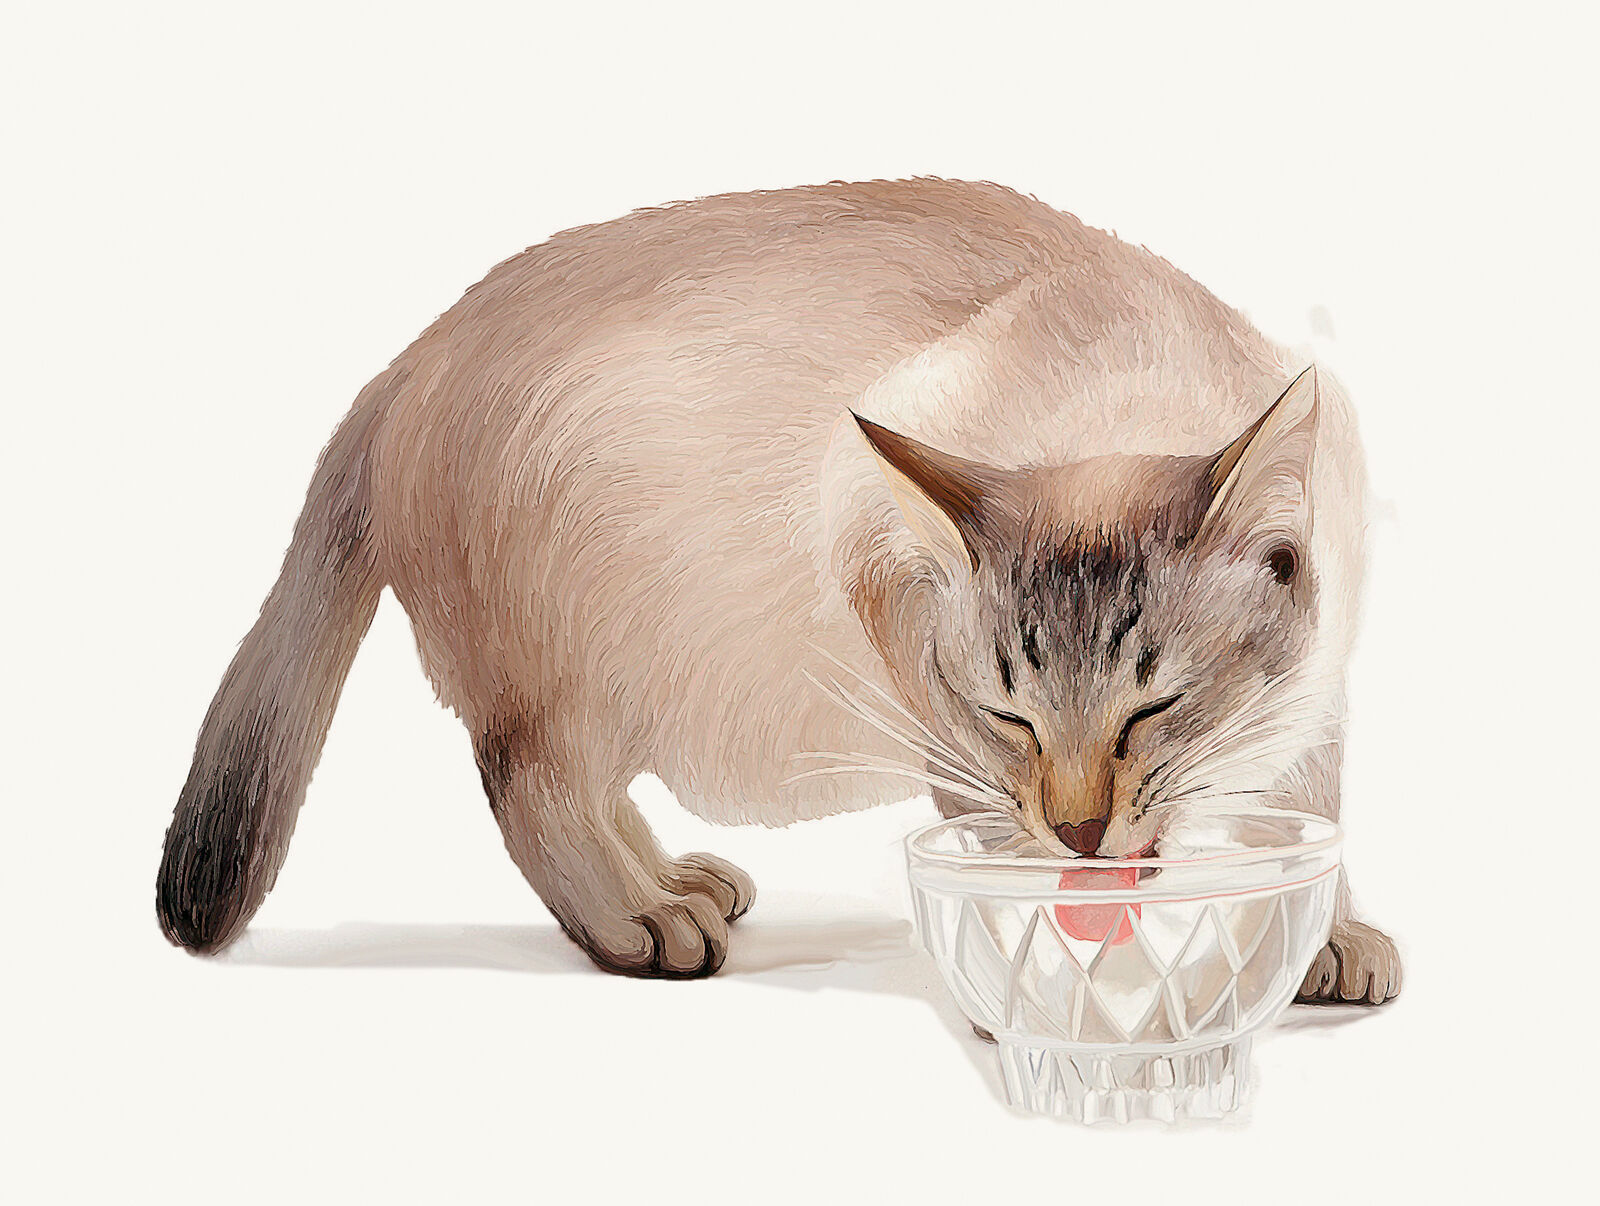 Figure 5a. In a safe, home situation, whiskers can touch the edge of the food or water bowl.